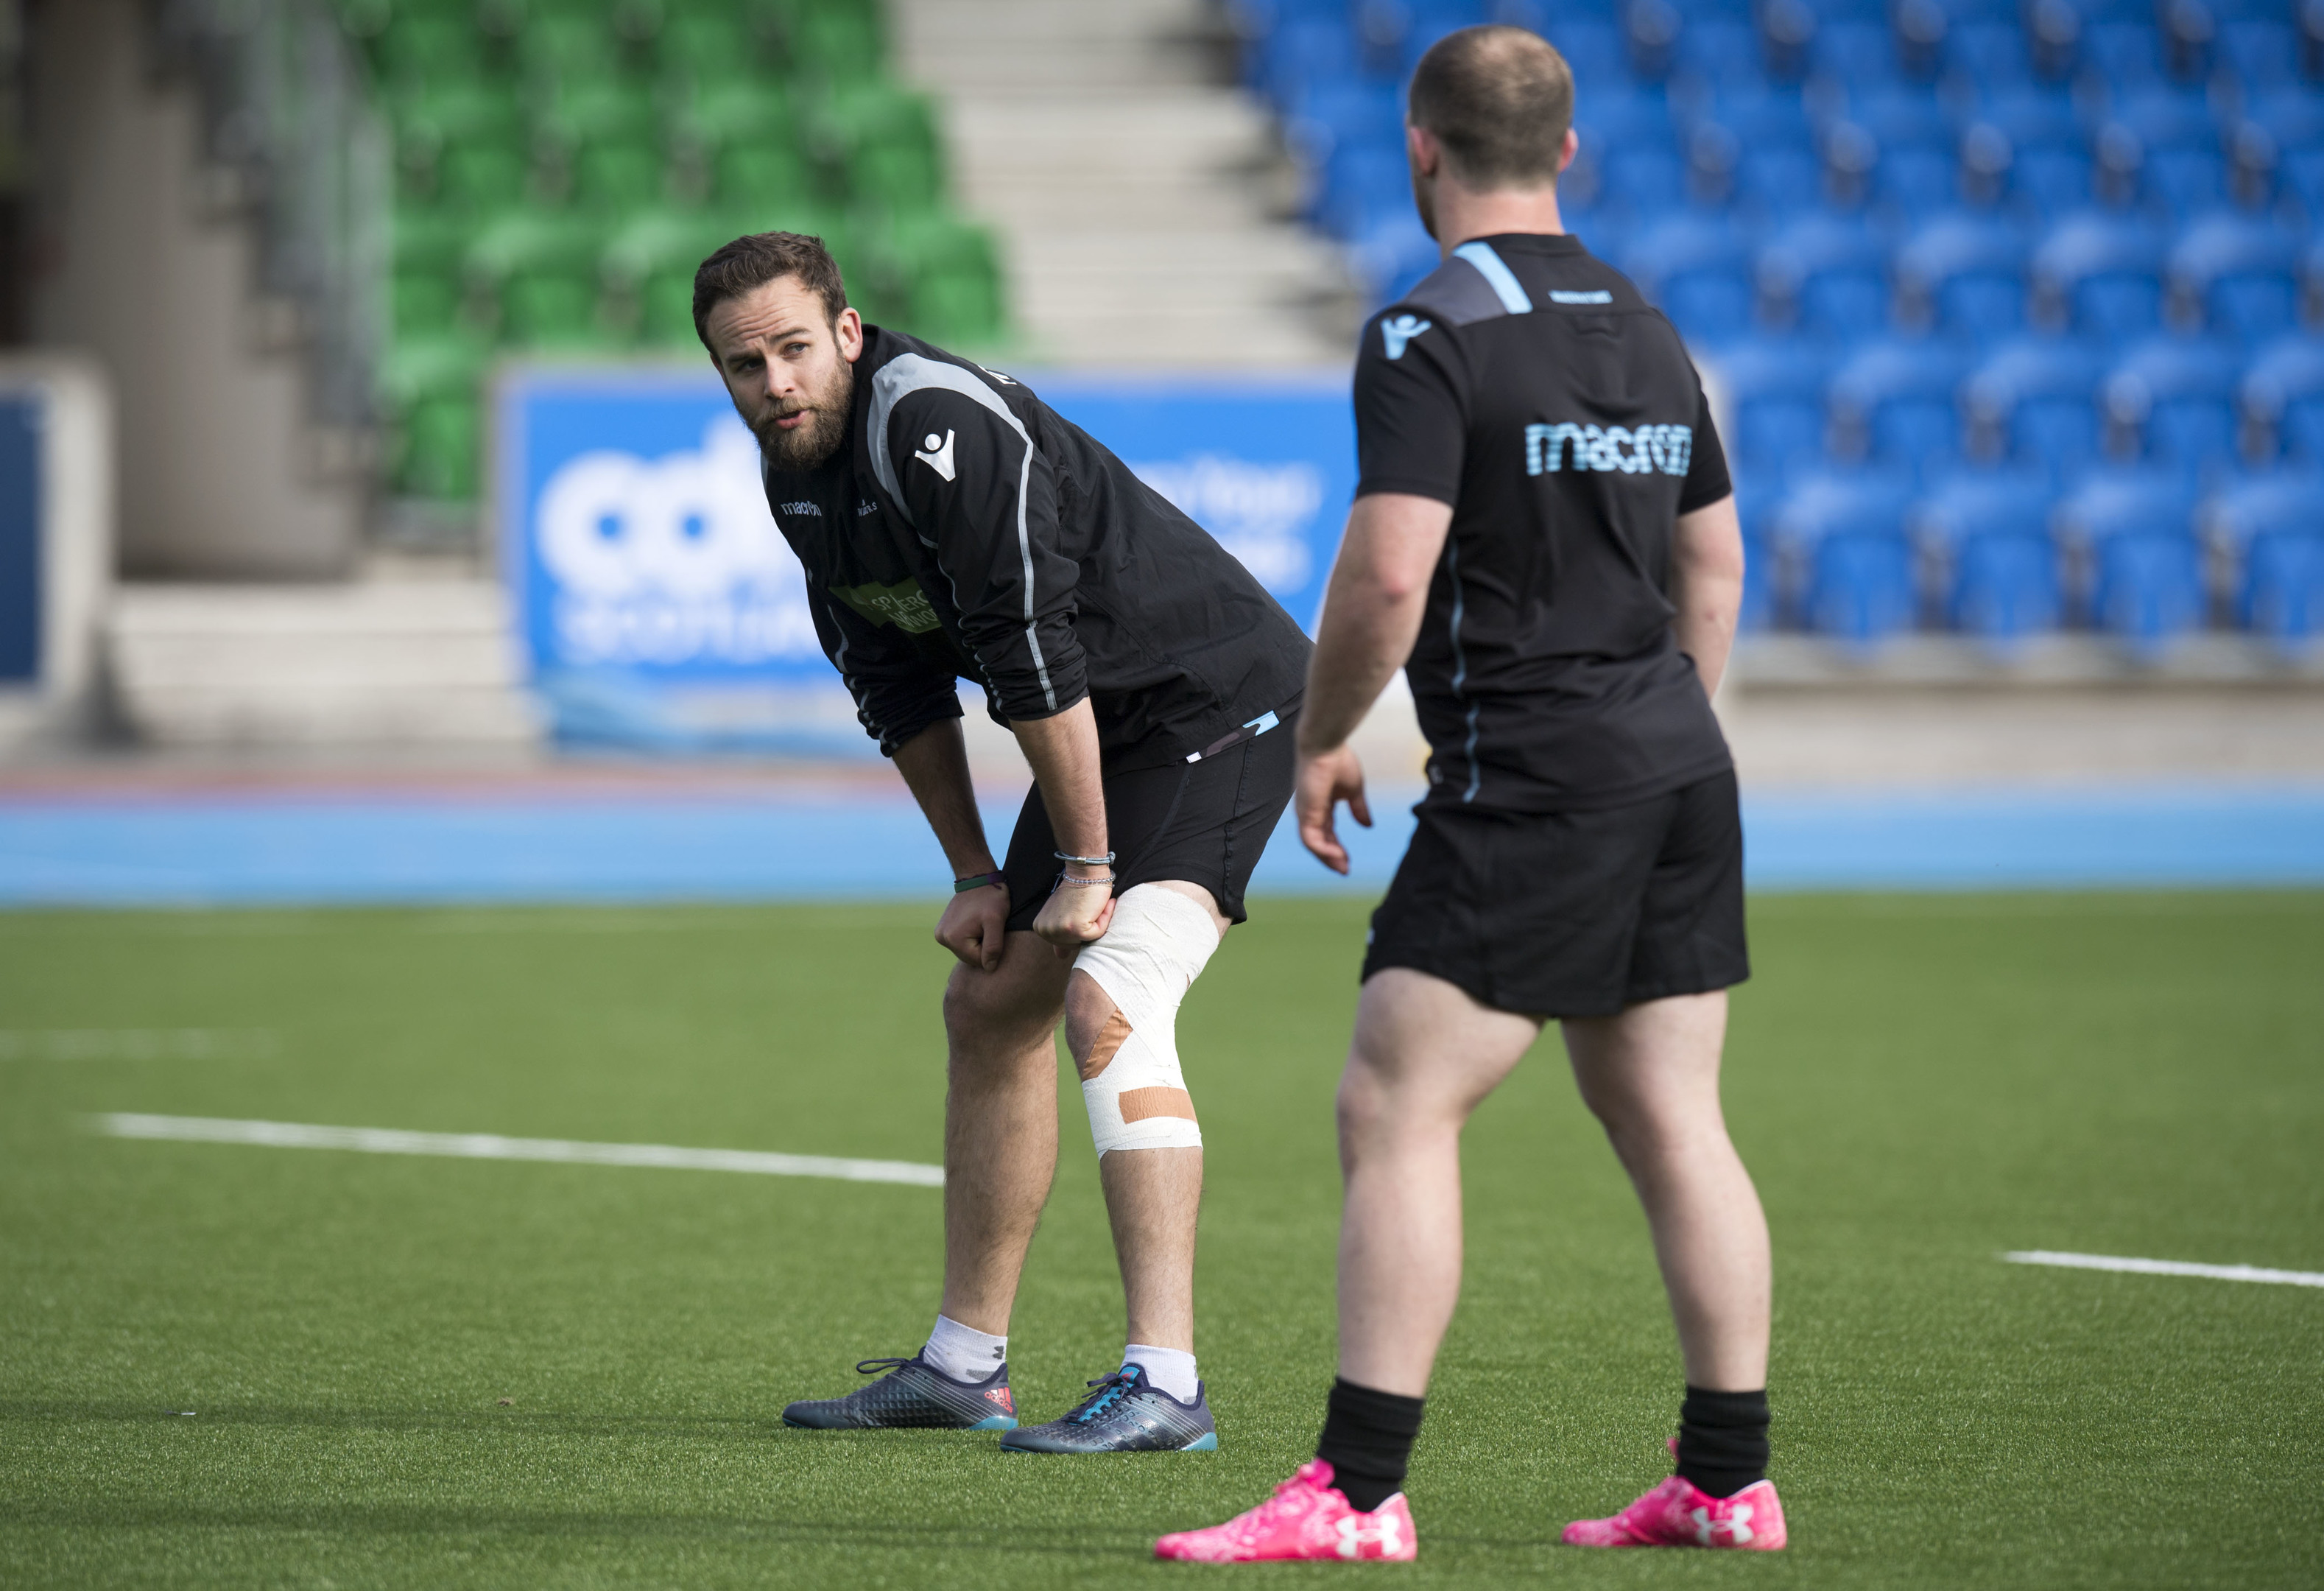 Ruaridh Jackson takes a break in training ahead of Glasgow's ERCC meeting with Exeter.